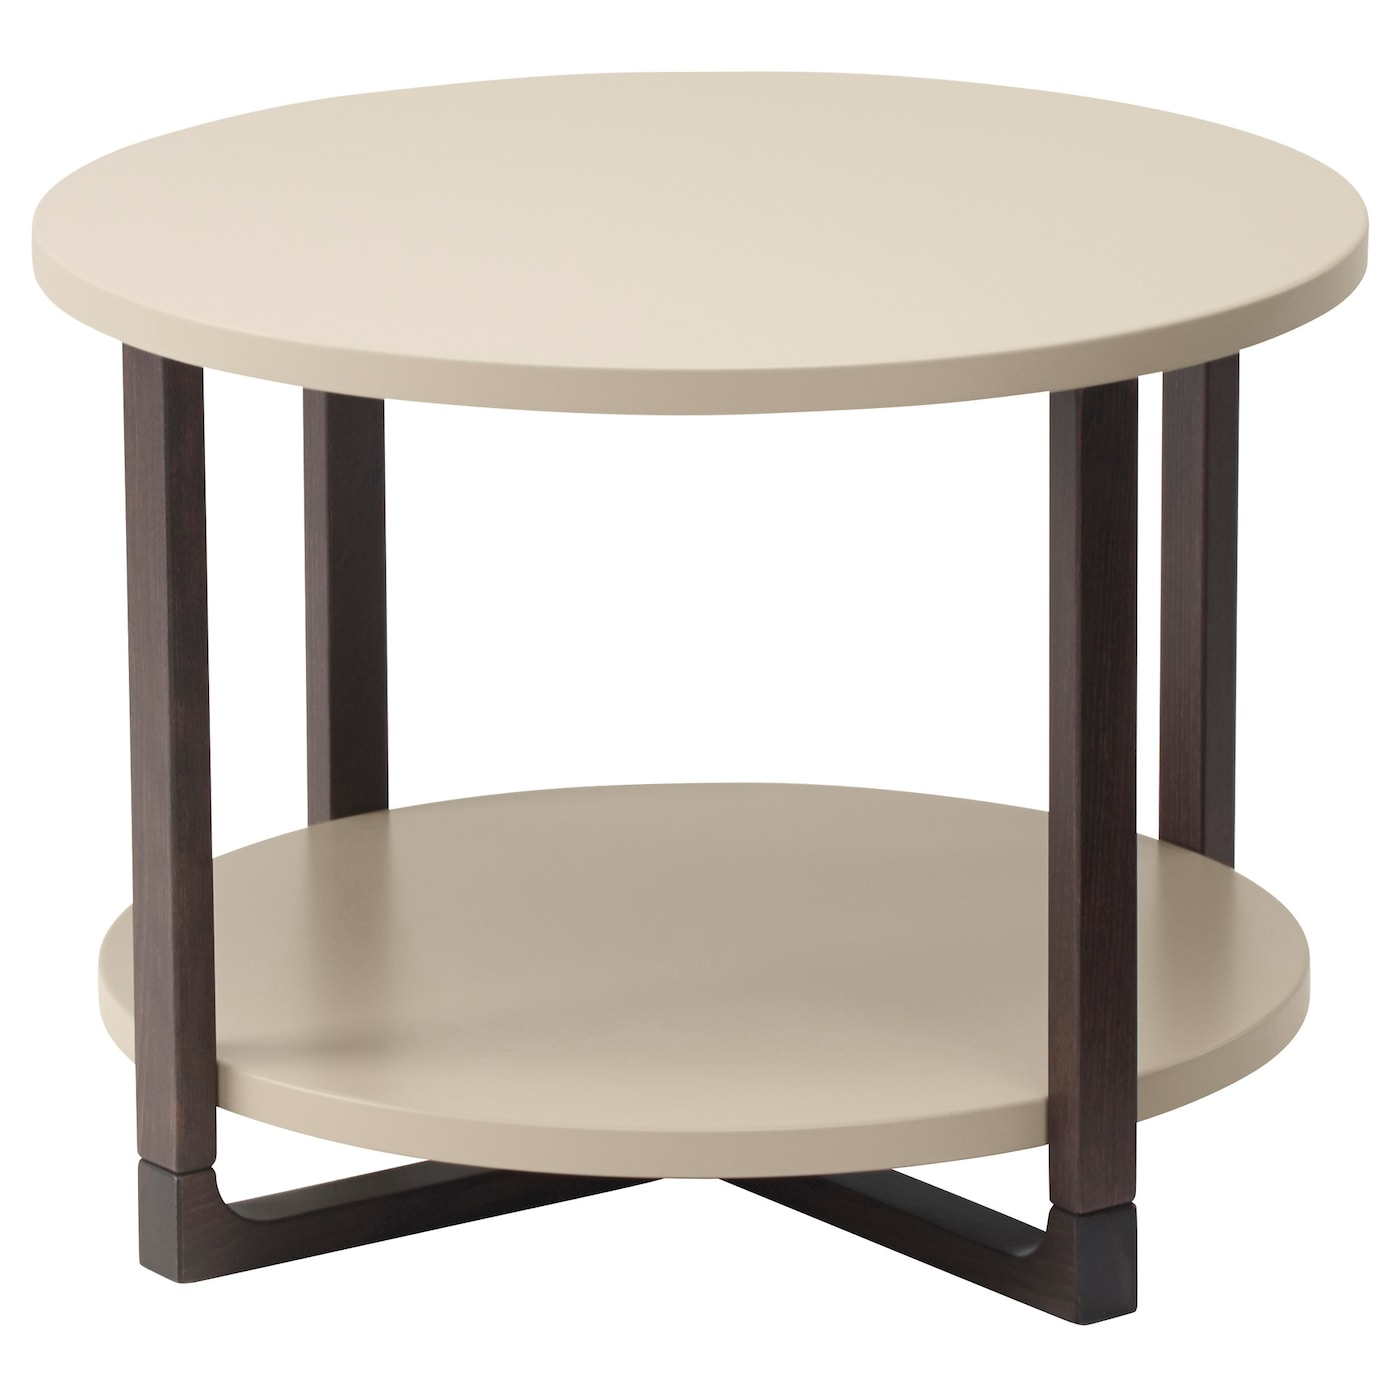 Rissna side table beige 60 cm ikea for Base de table ikea